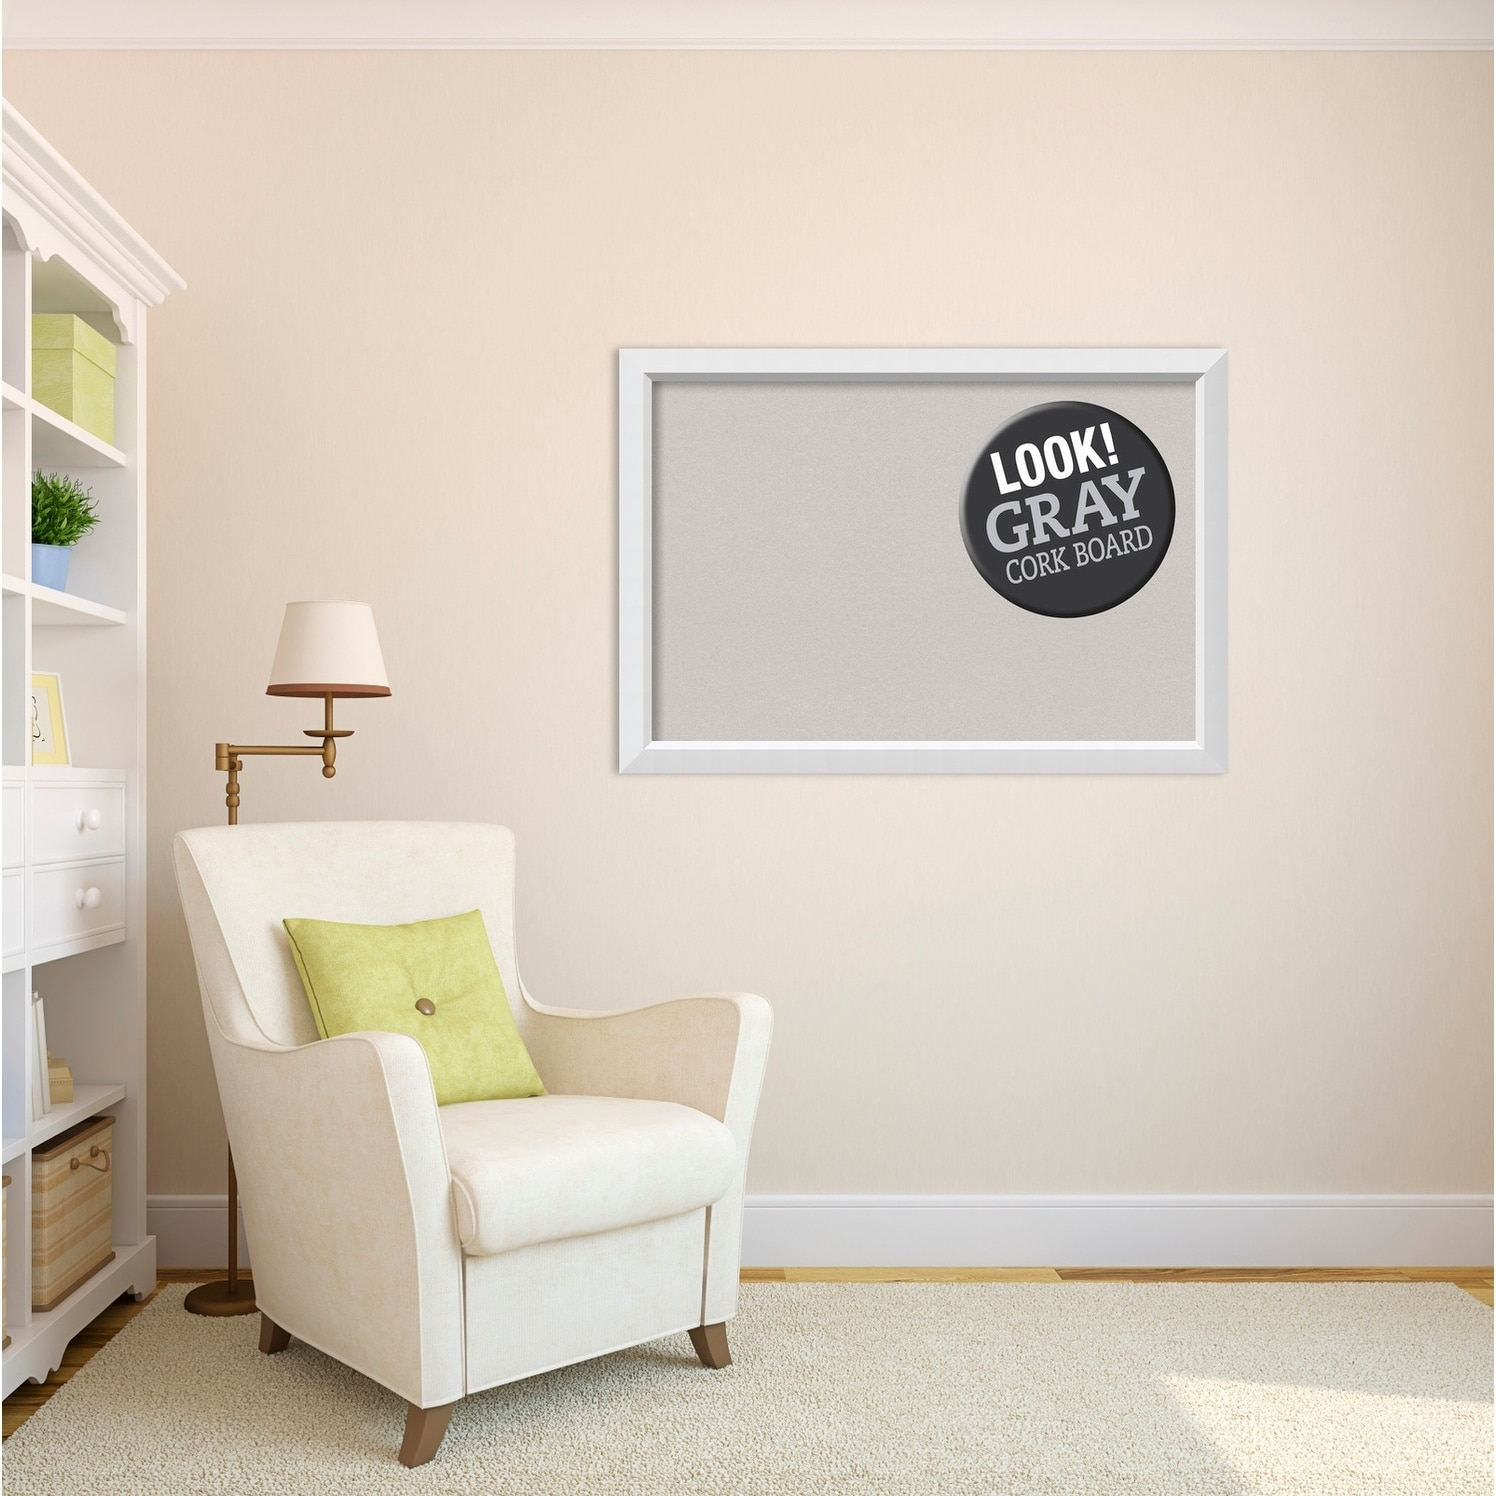 Shop Framed Grey Cork Board, Blanco White - Free Shipping Today ...